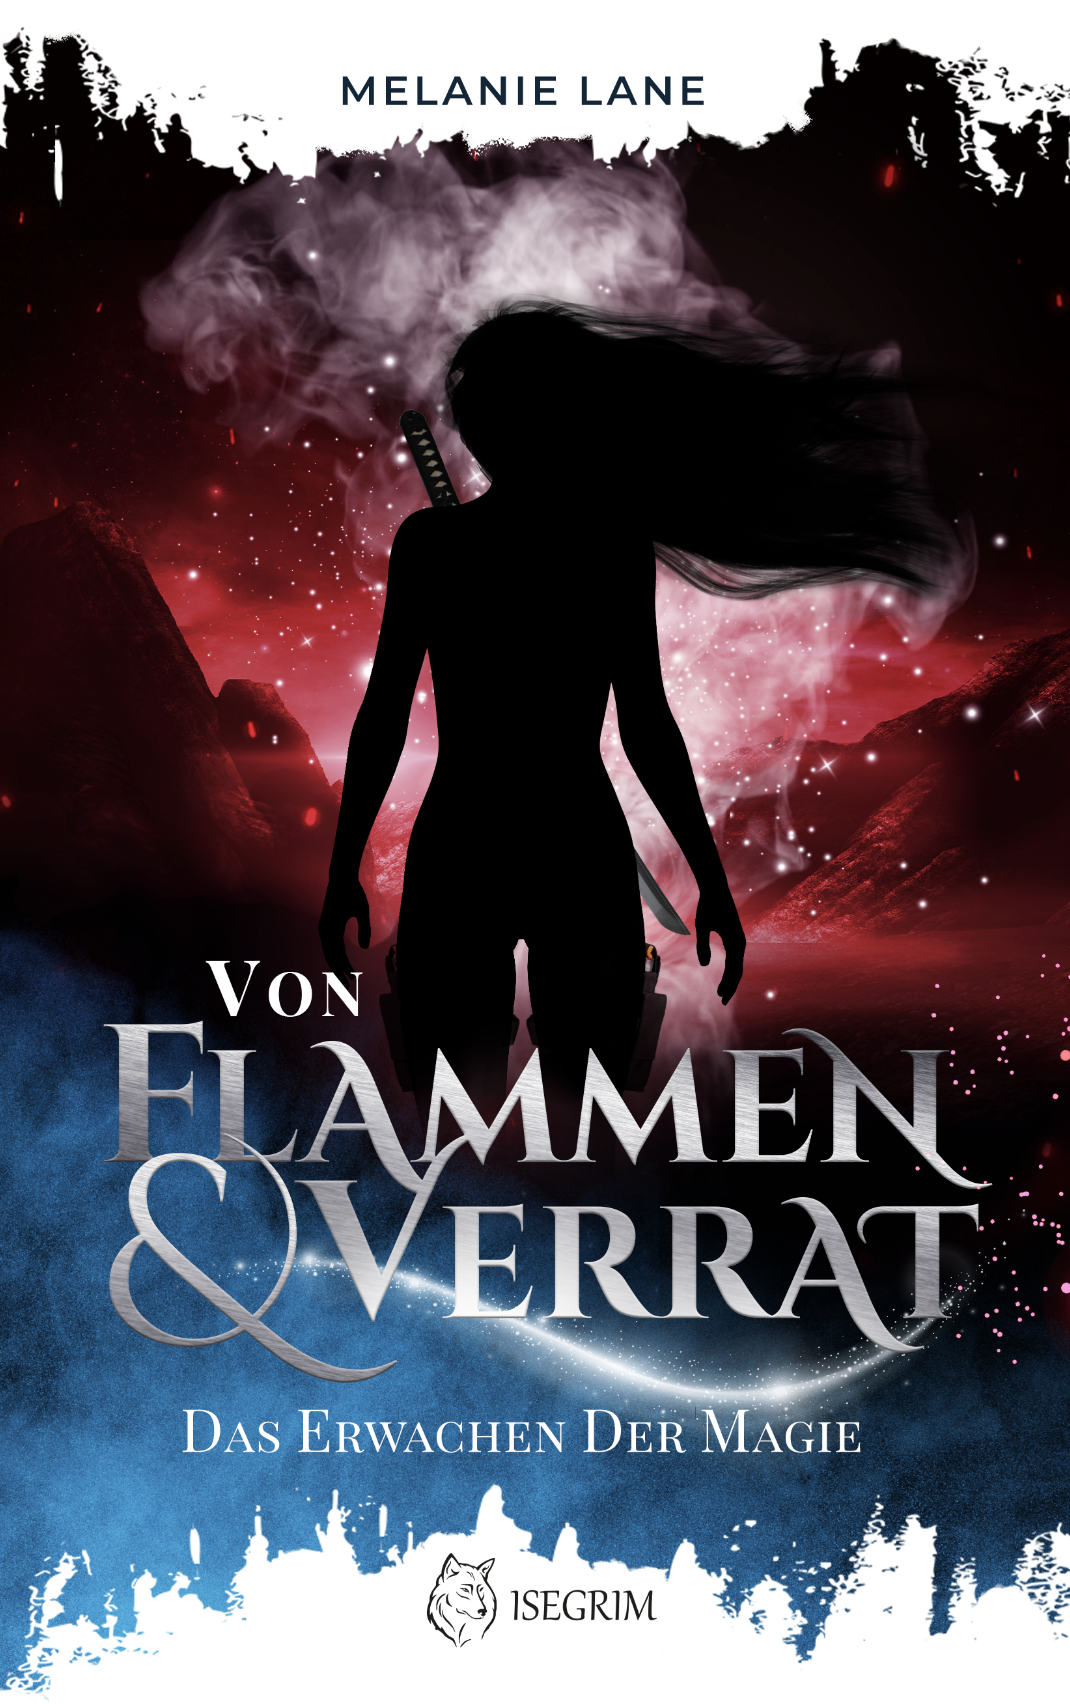 Cover-frontal-VFuV